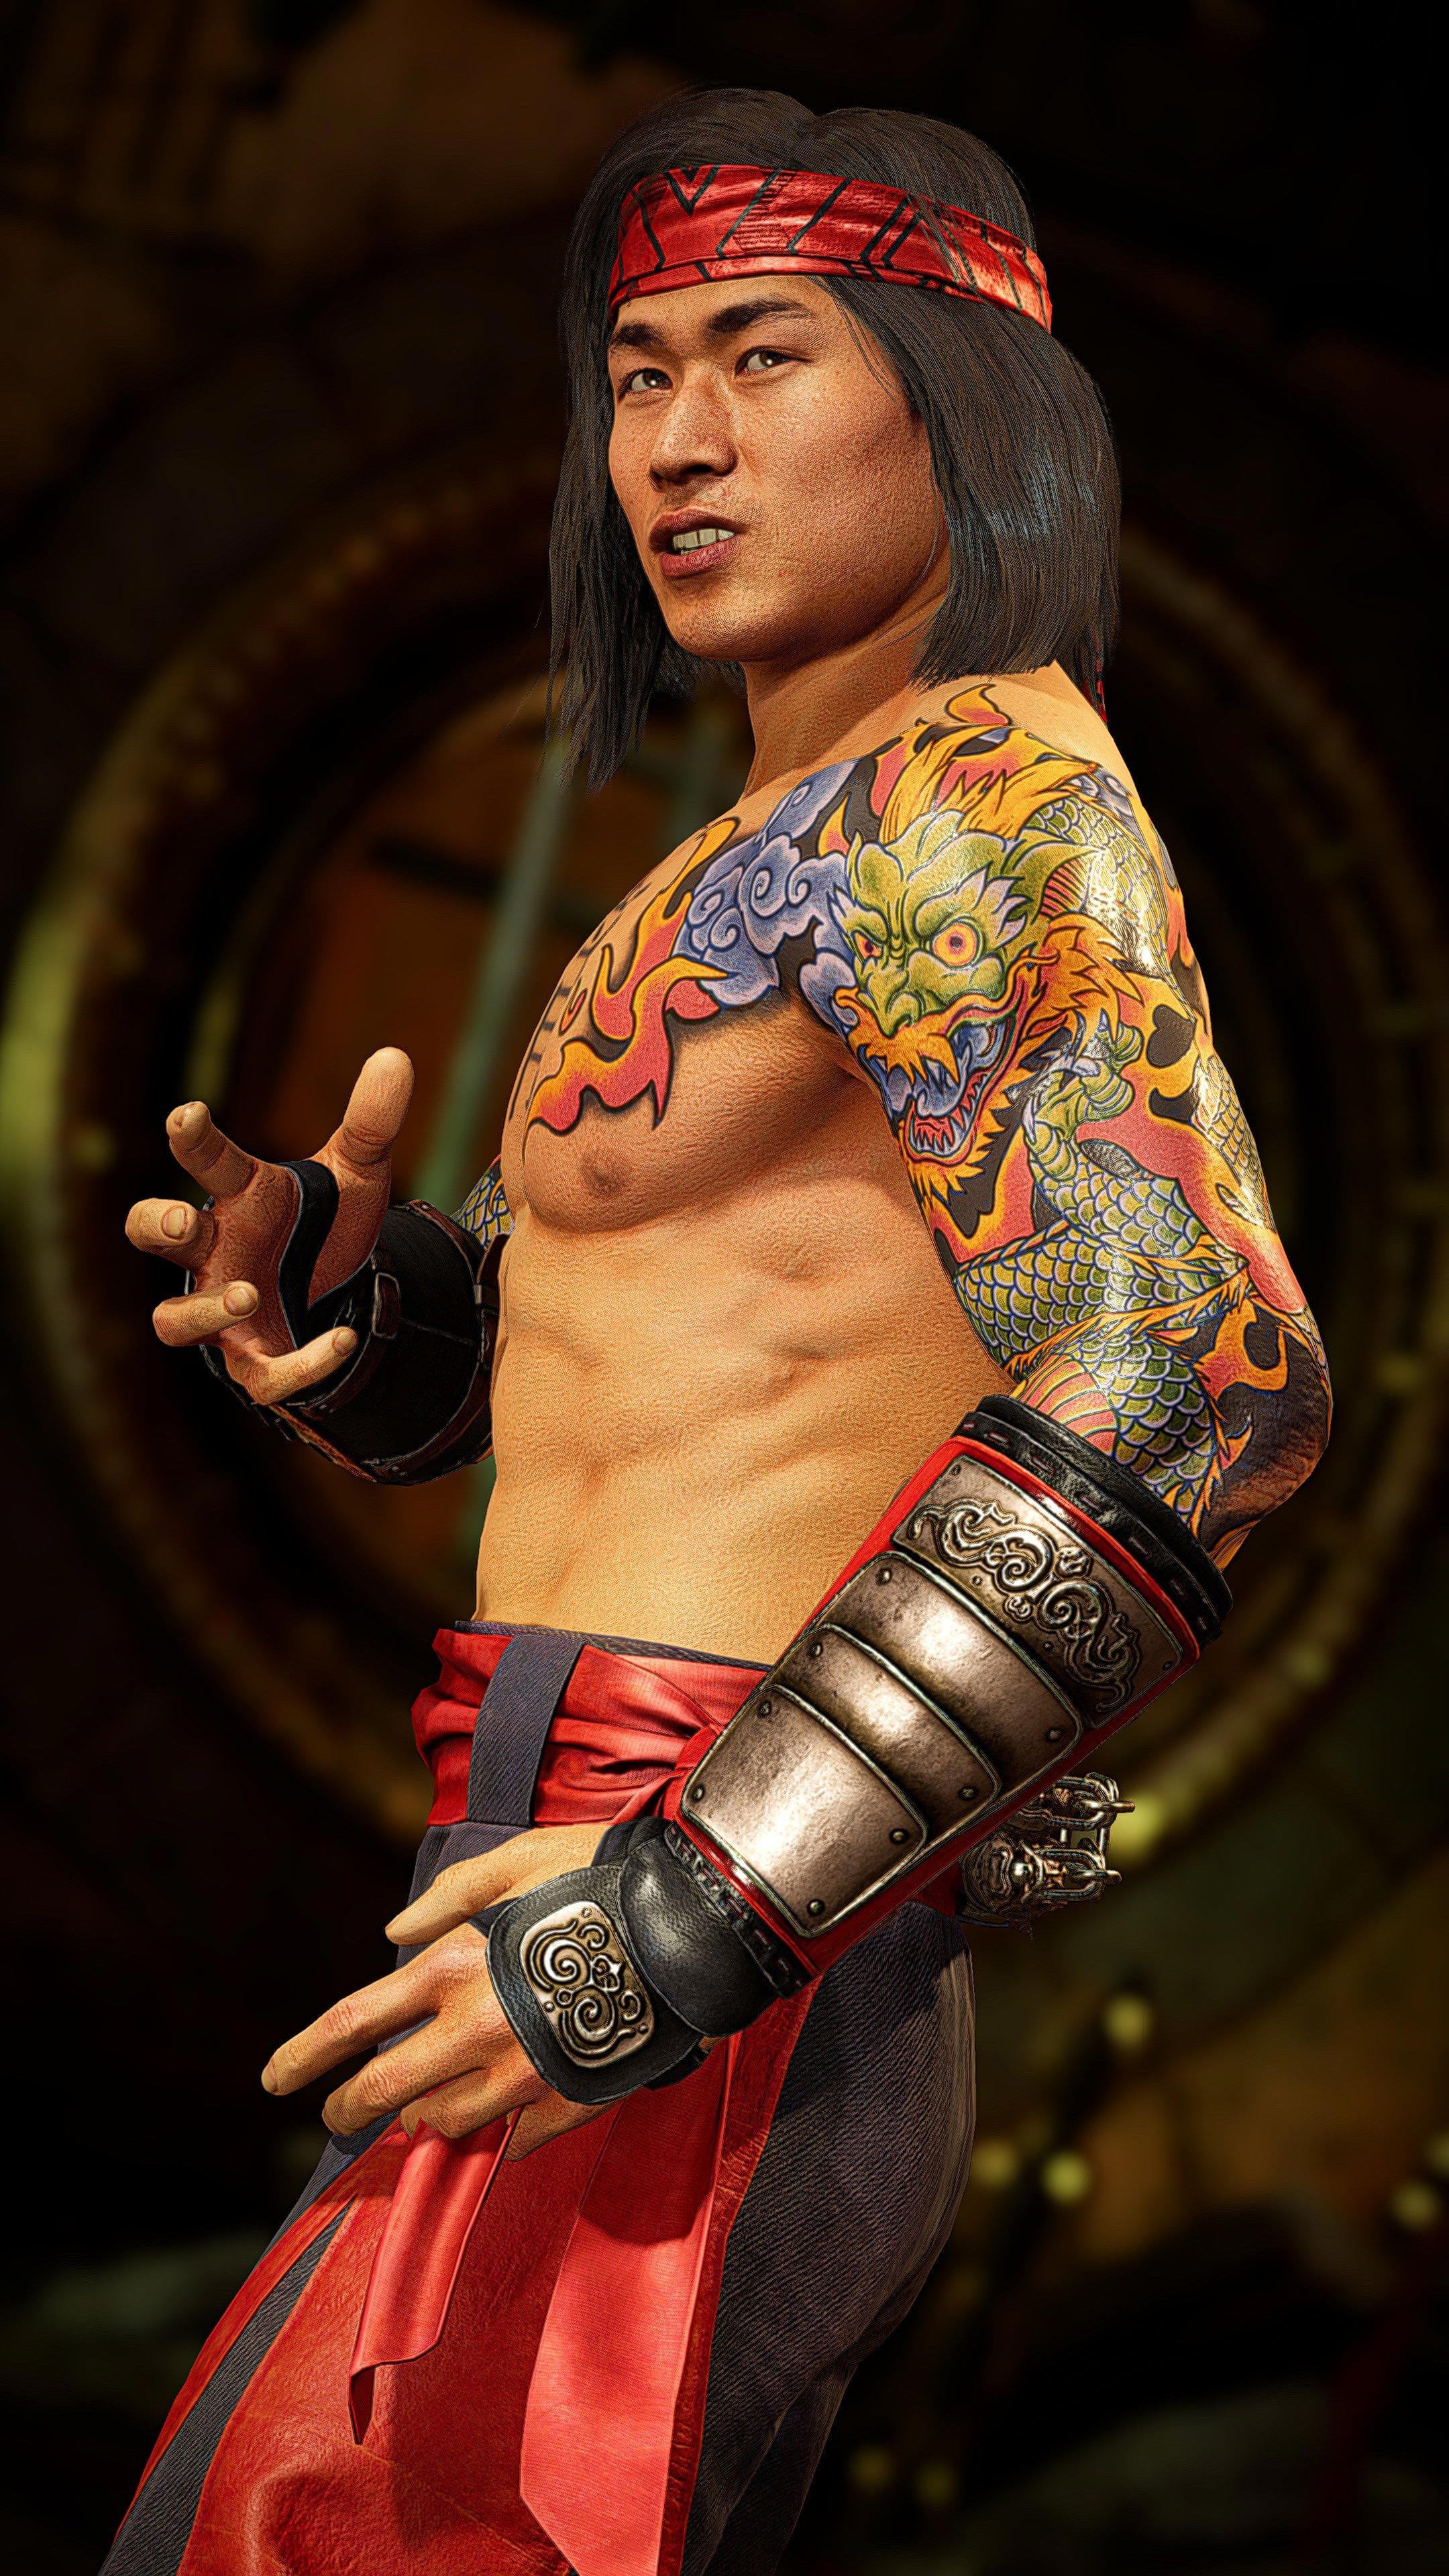 Liu Kang and Kotal Kahn rock their body paint and ink in Mortal Kombat 11 Ultimate 3 out of 8 image gallery